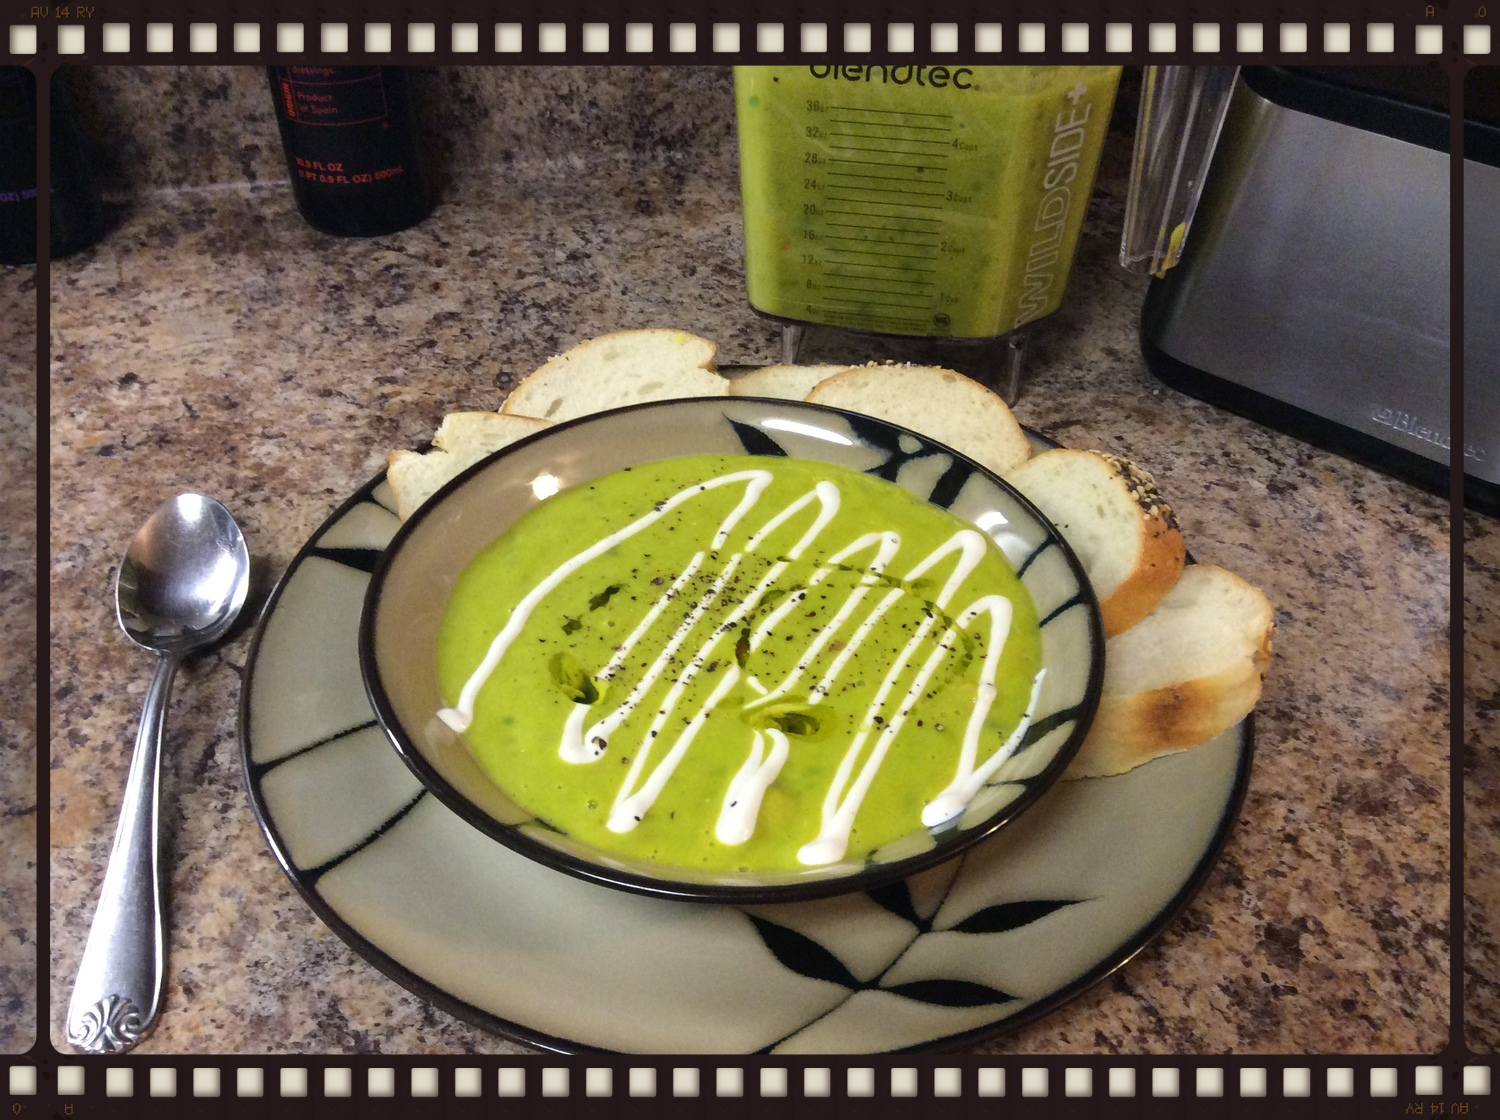 Green Pea Soup with Cashew Cream topping made in the Blendtec Designer 725